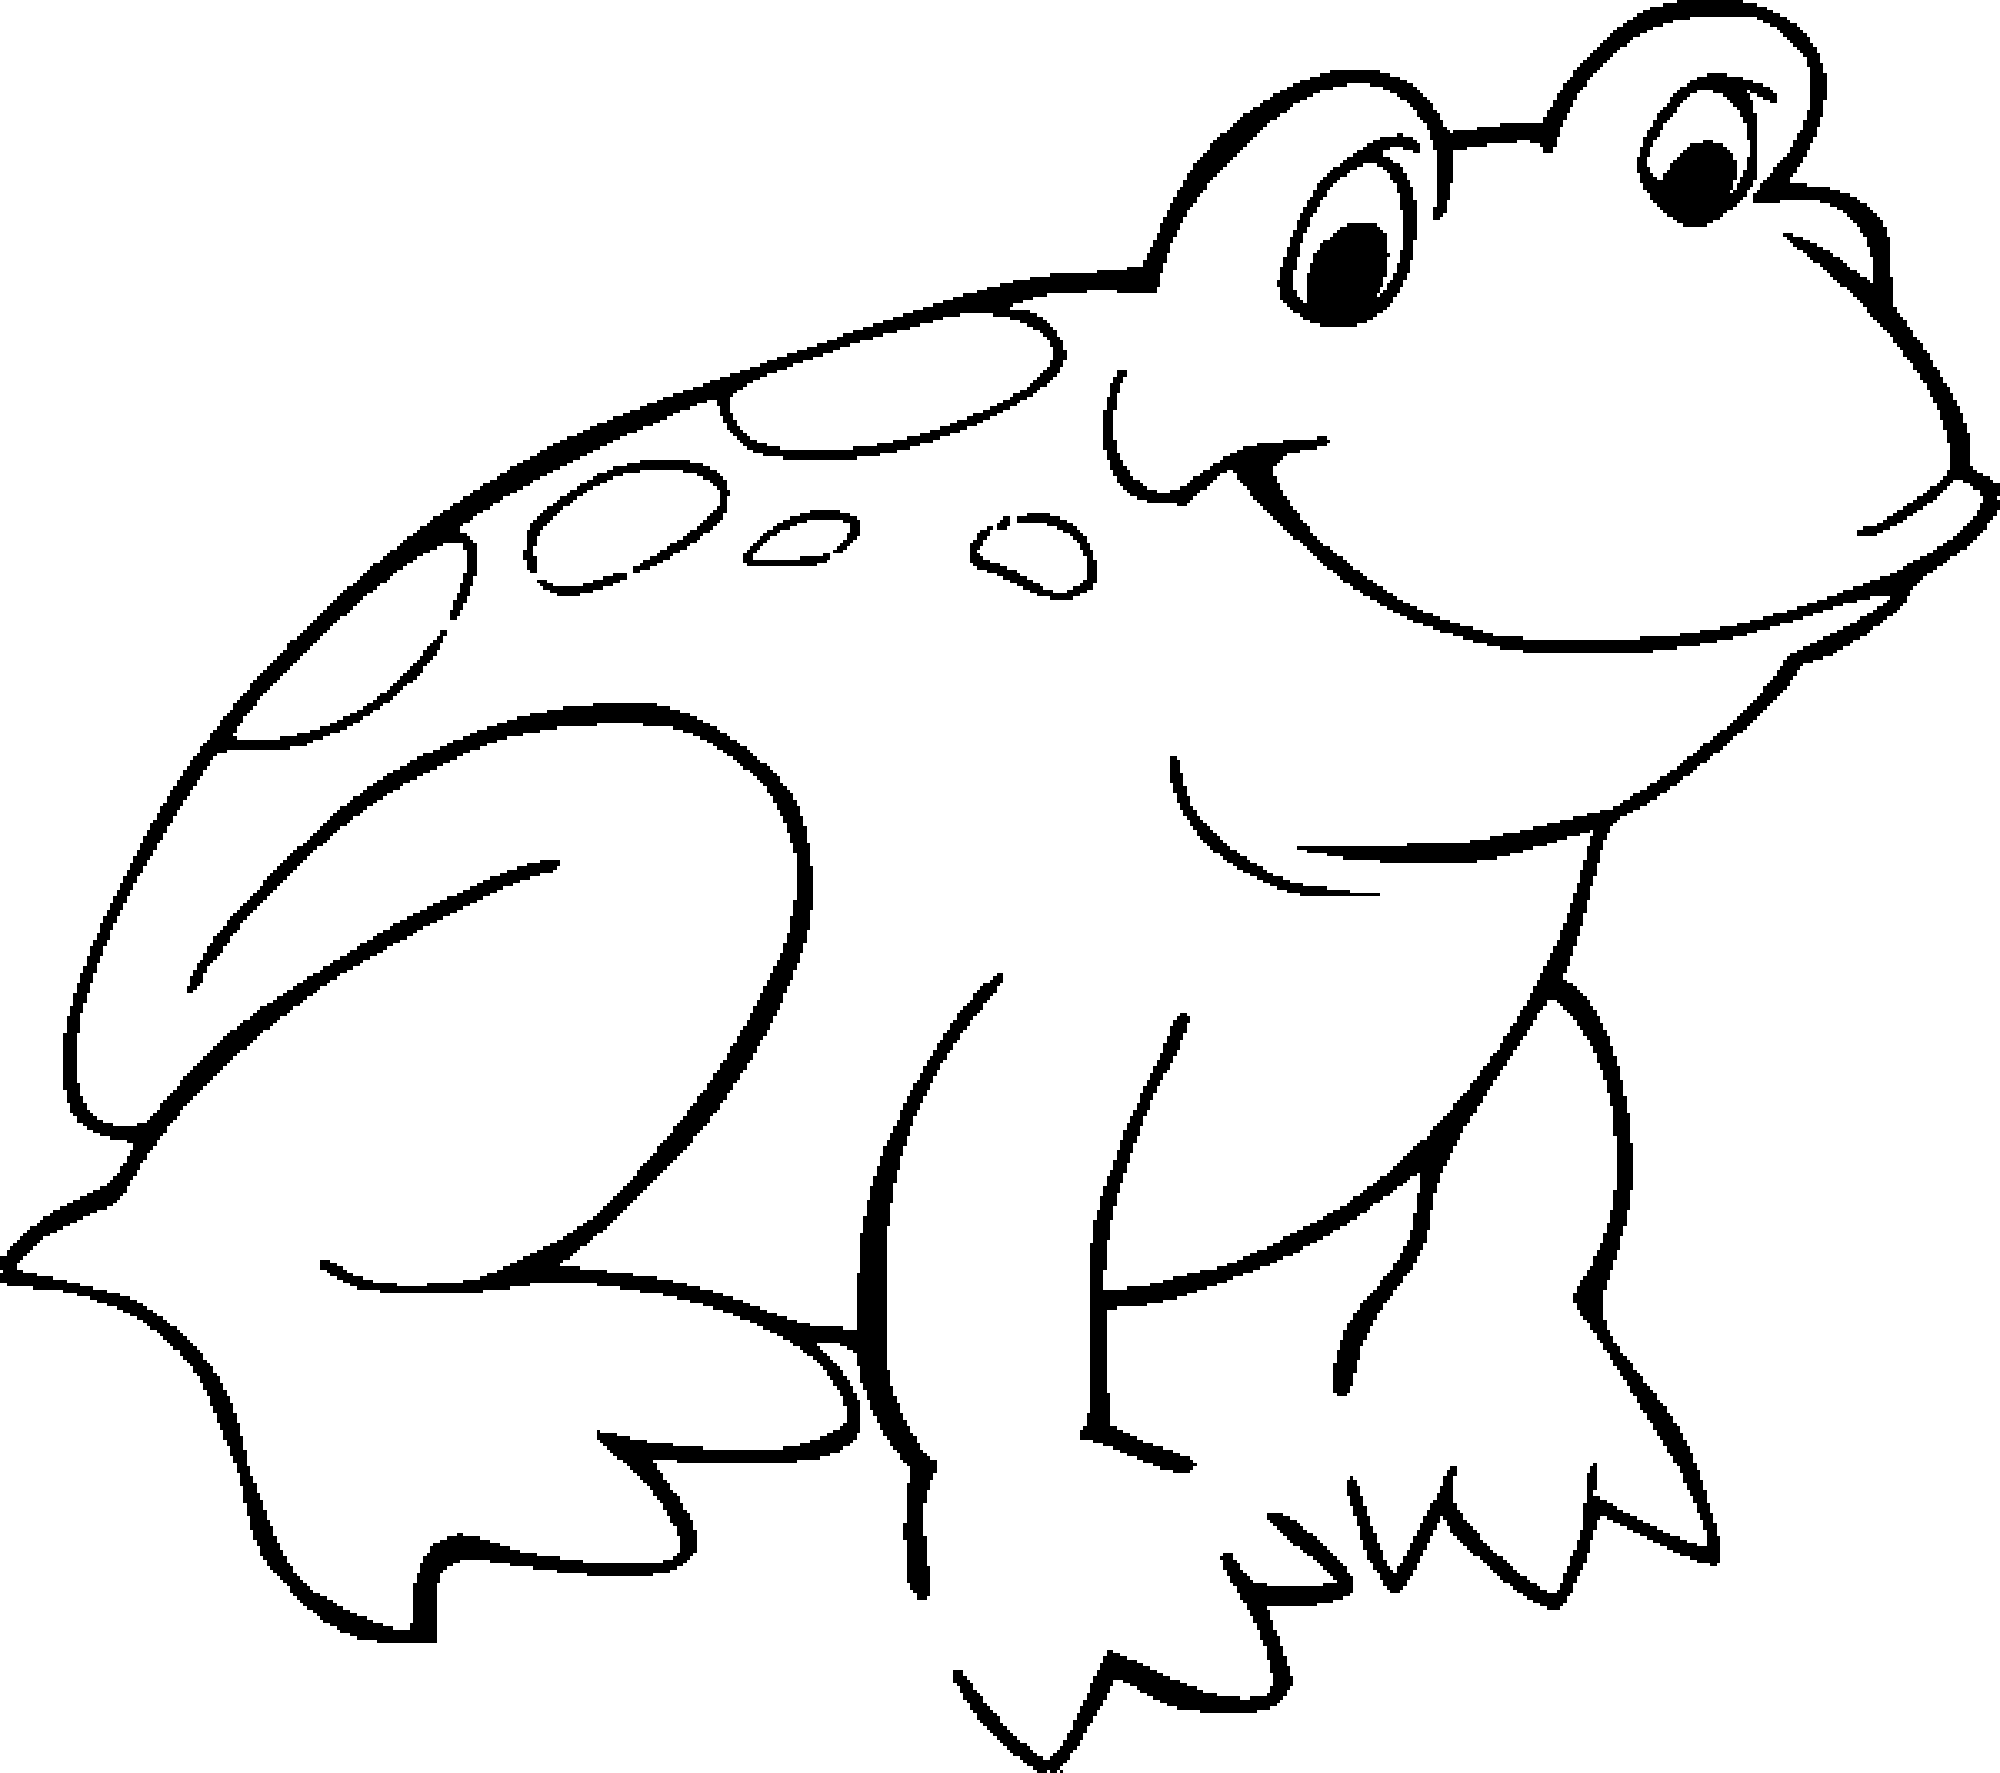 2000x1773 Kermit The Frog Clipart